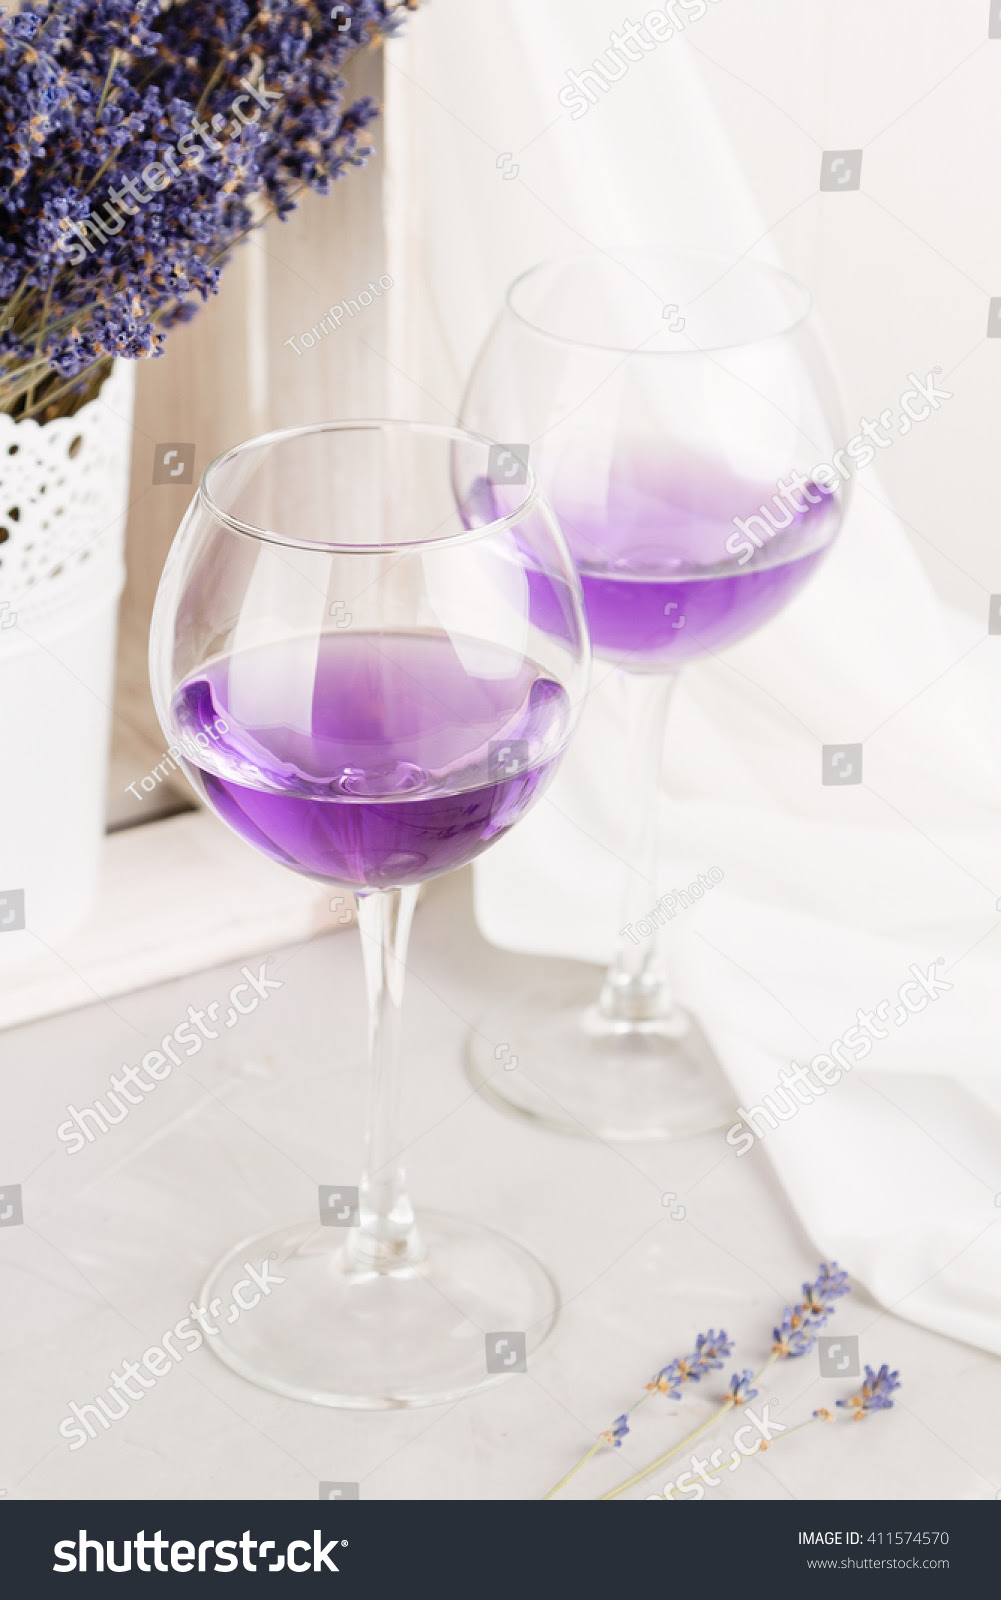 http://www.shutterstock.com/pic-411574570/stock-photo-lavender-cocktail-on-white-background-romantic-concept-shallow-focus.html